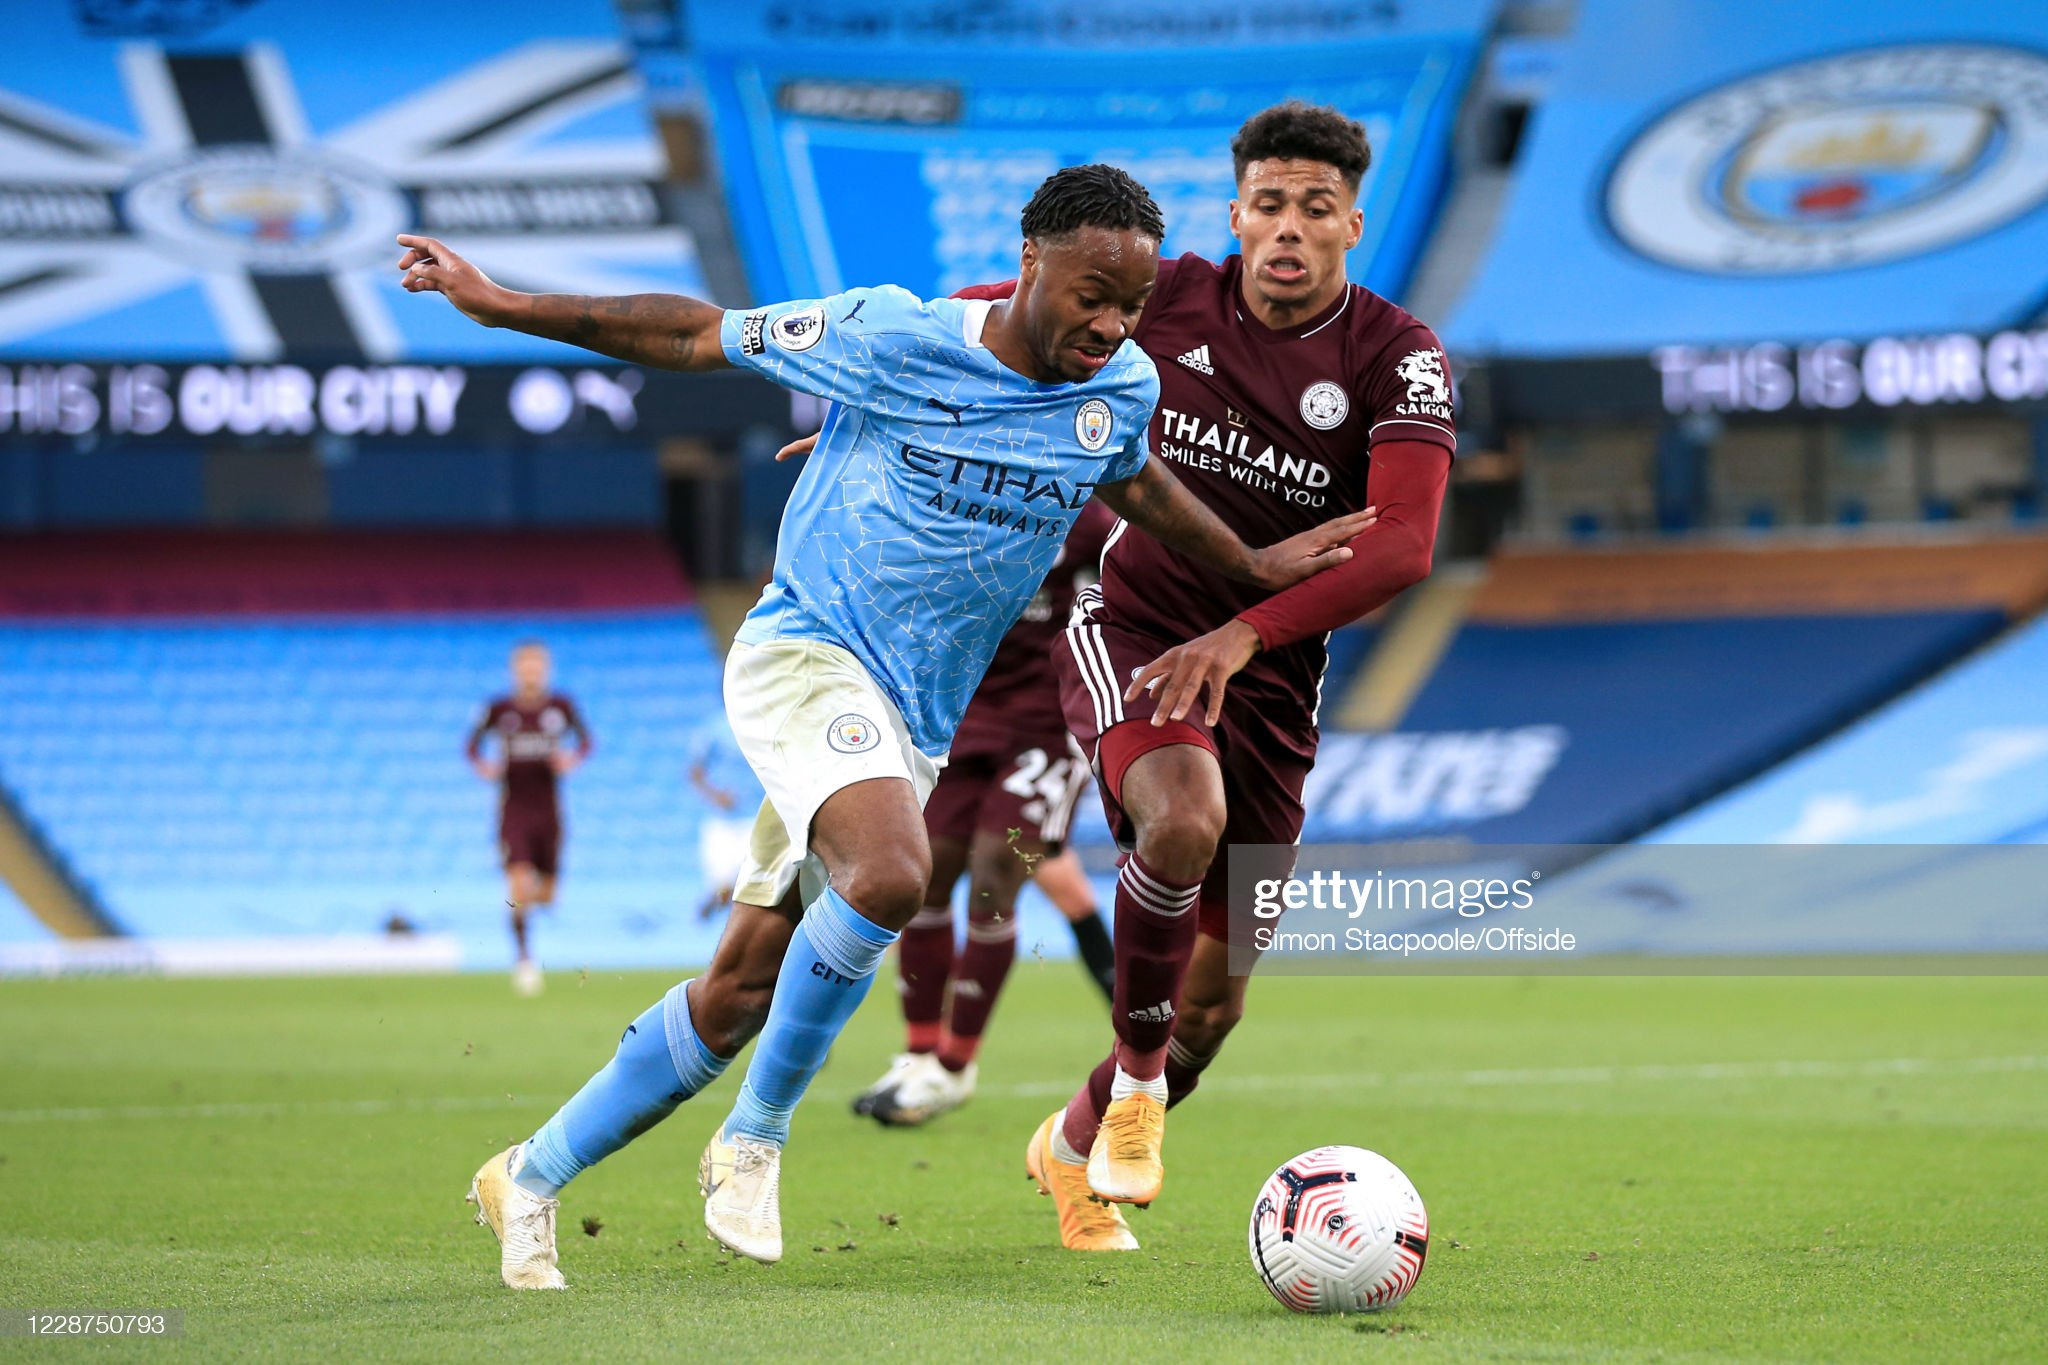 Leicester vs Manchester City preview, prediction and odds